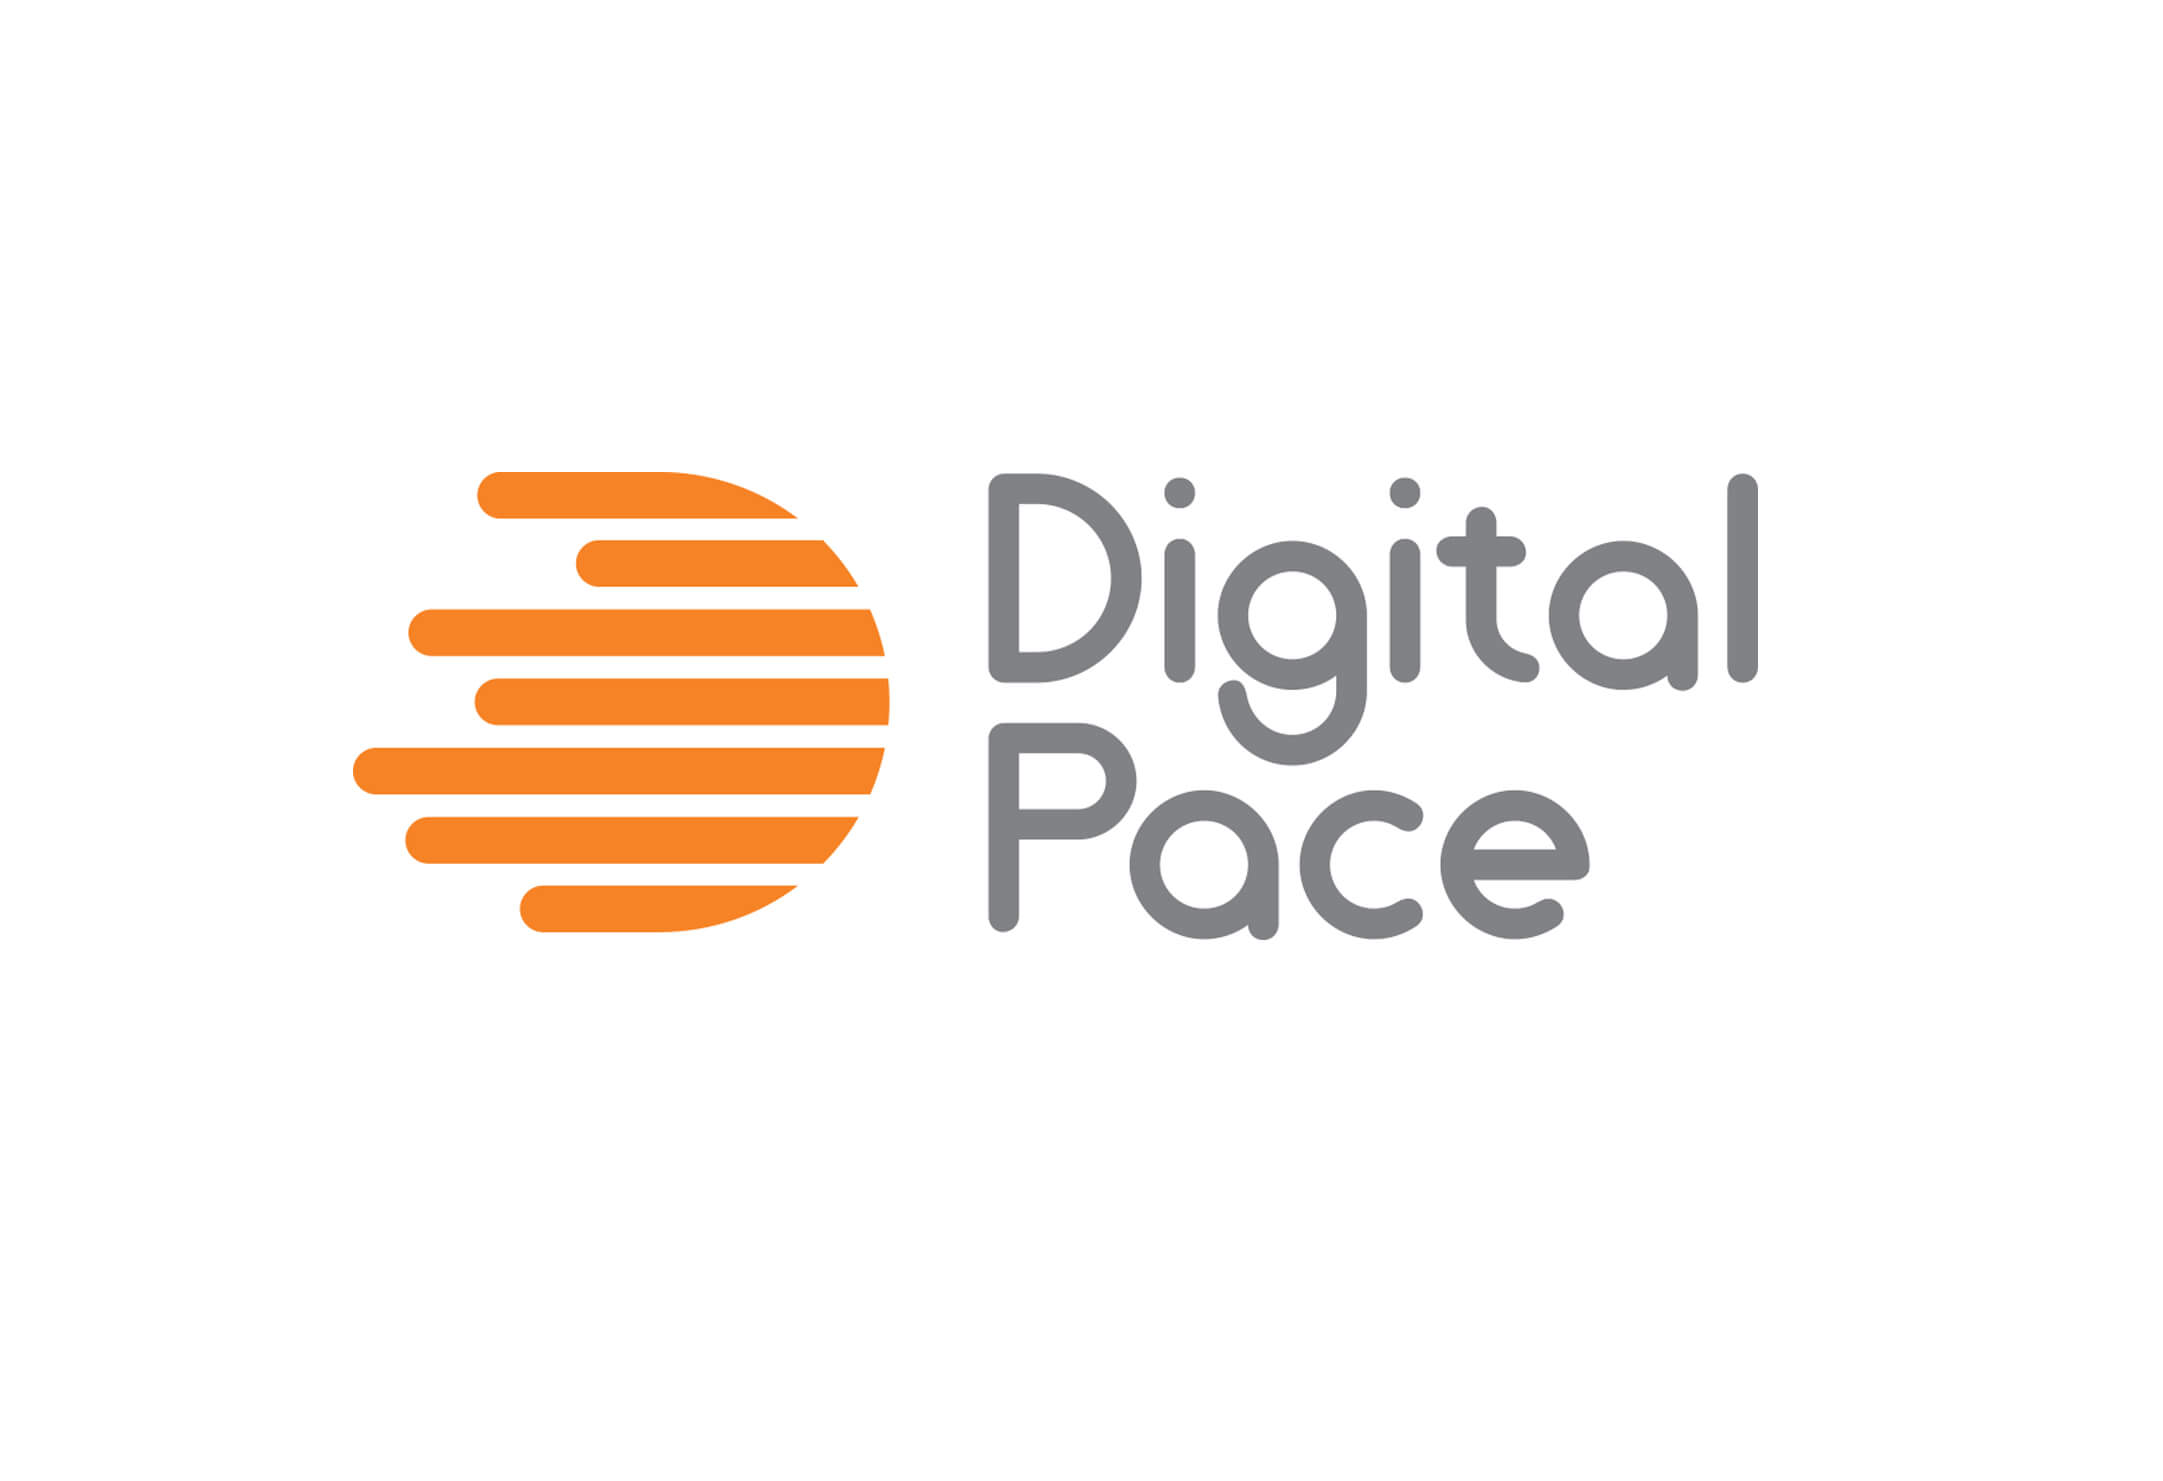 Digital Pace logo for website